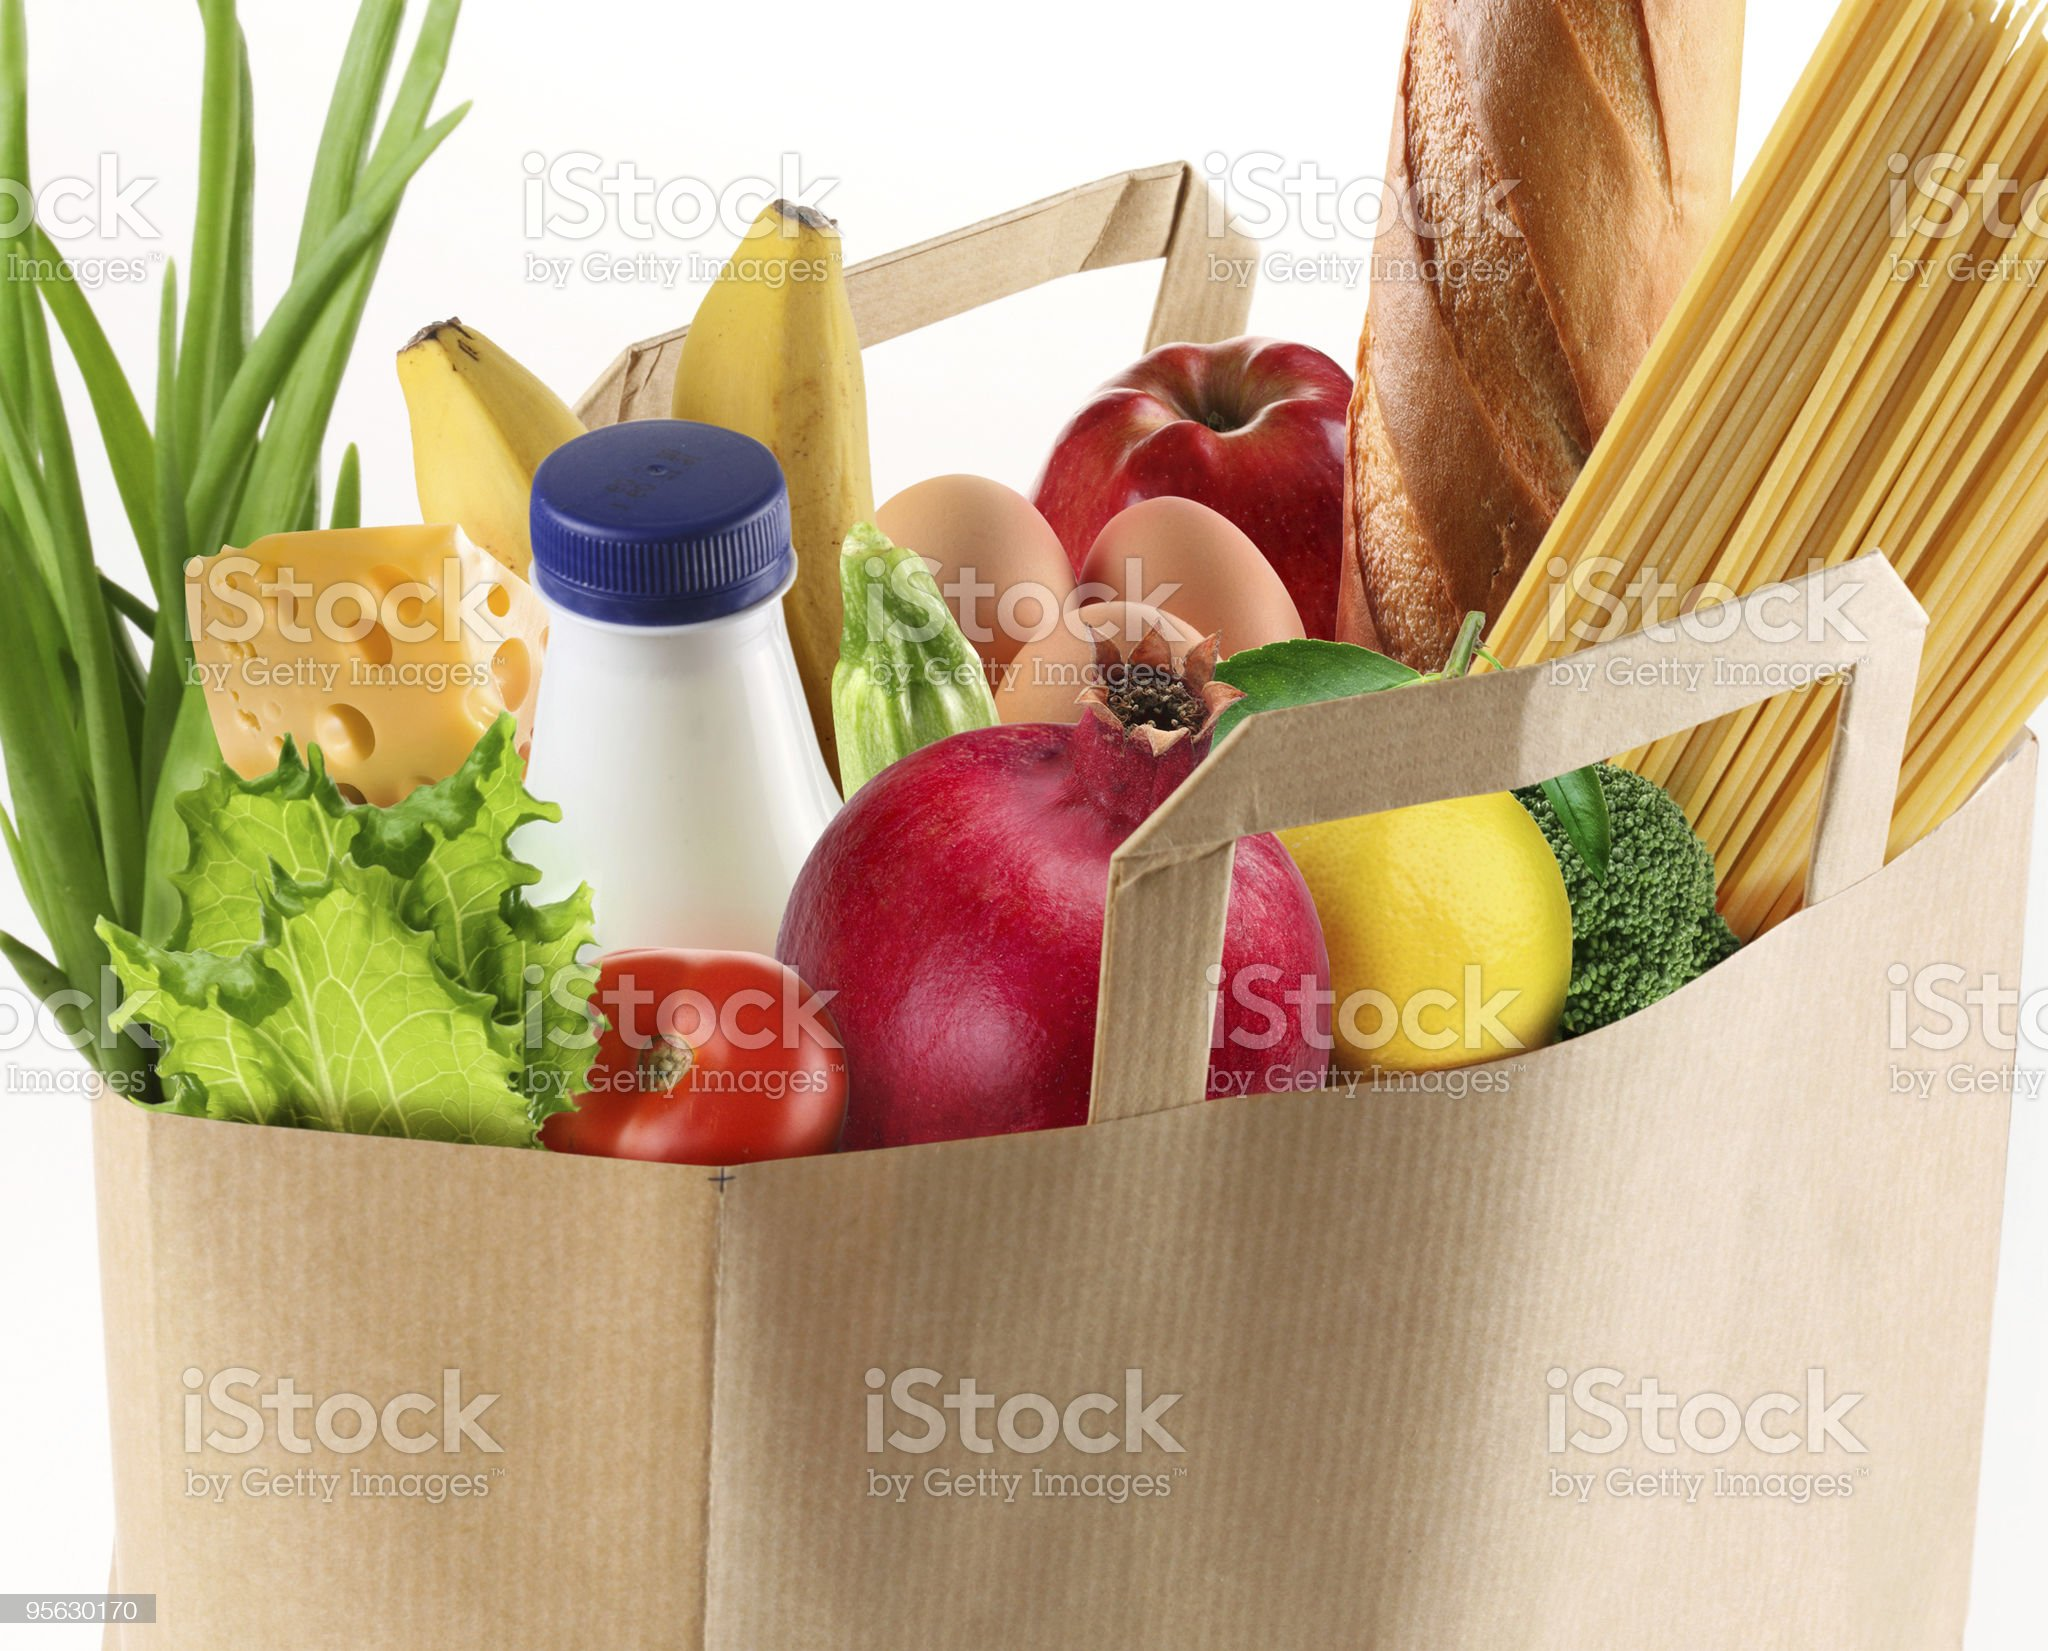 Paper bag filled with fruits vegetables pasta bread and milk royalty-free stock photo